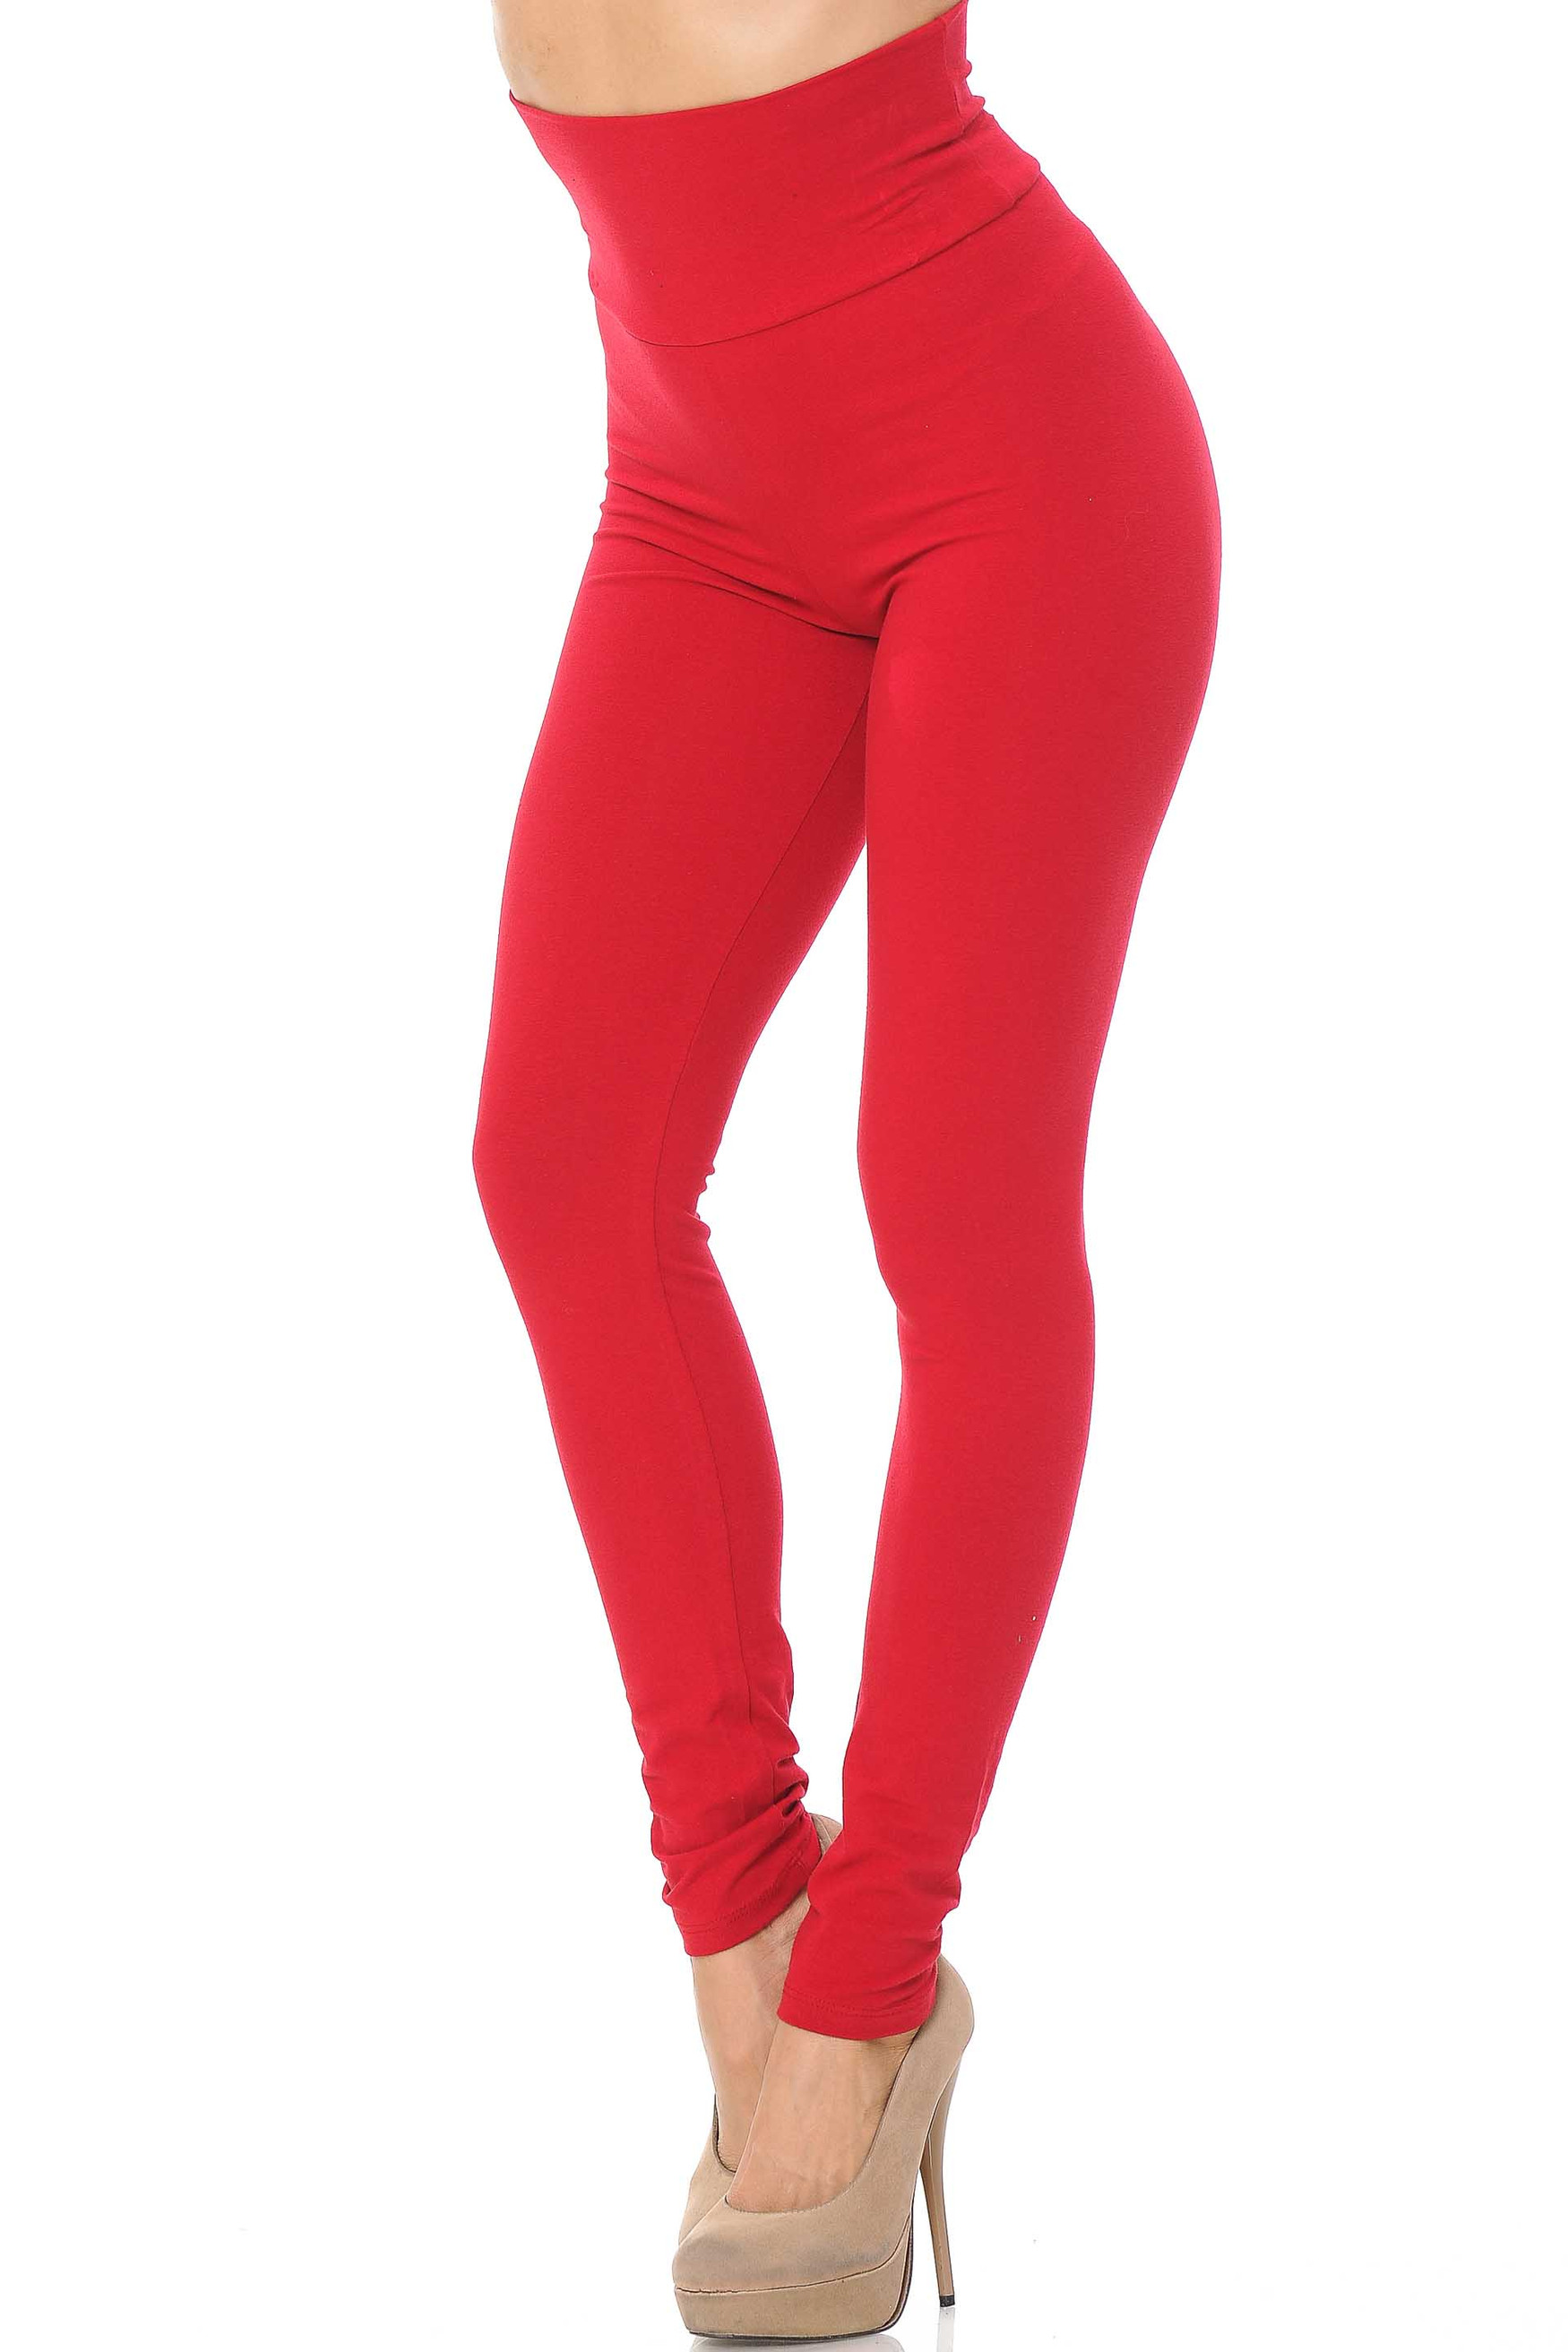 Red USA High Waisted Cotton Leggings